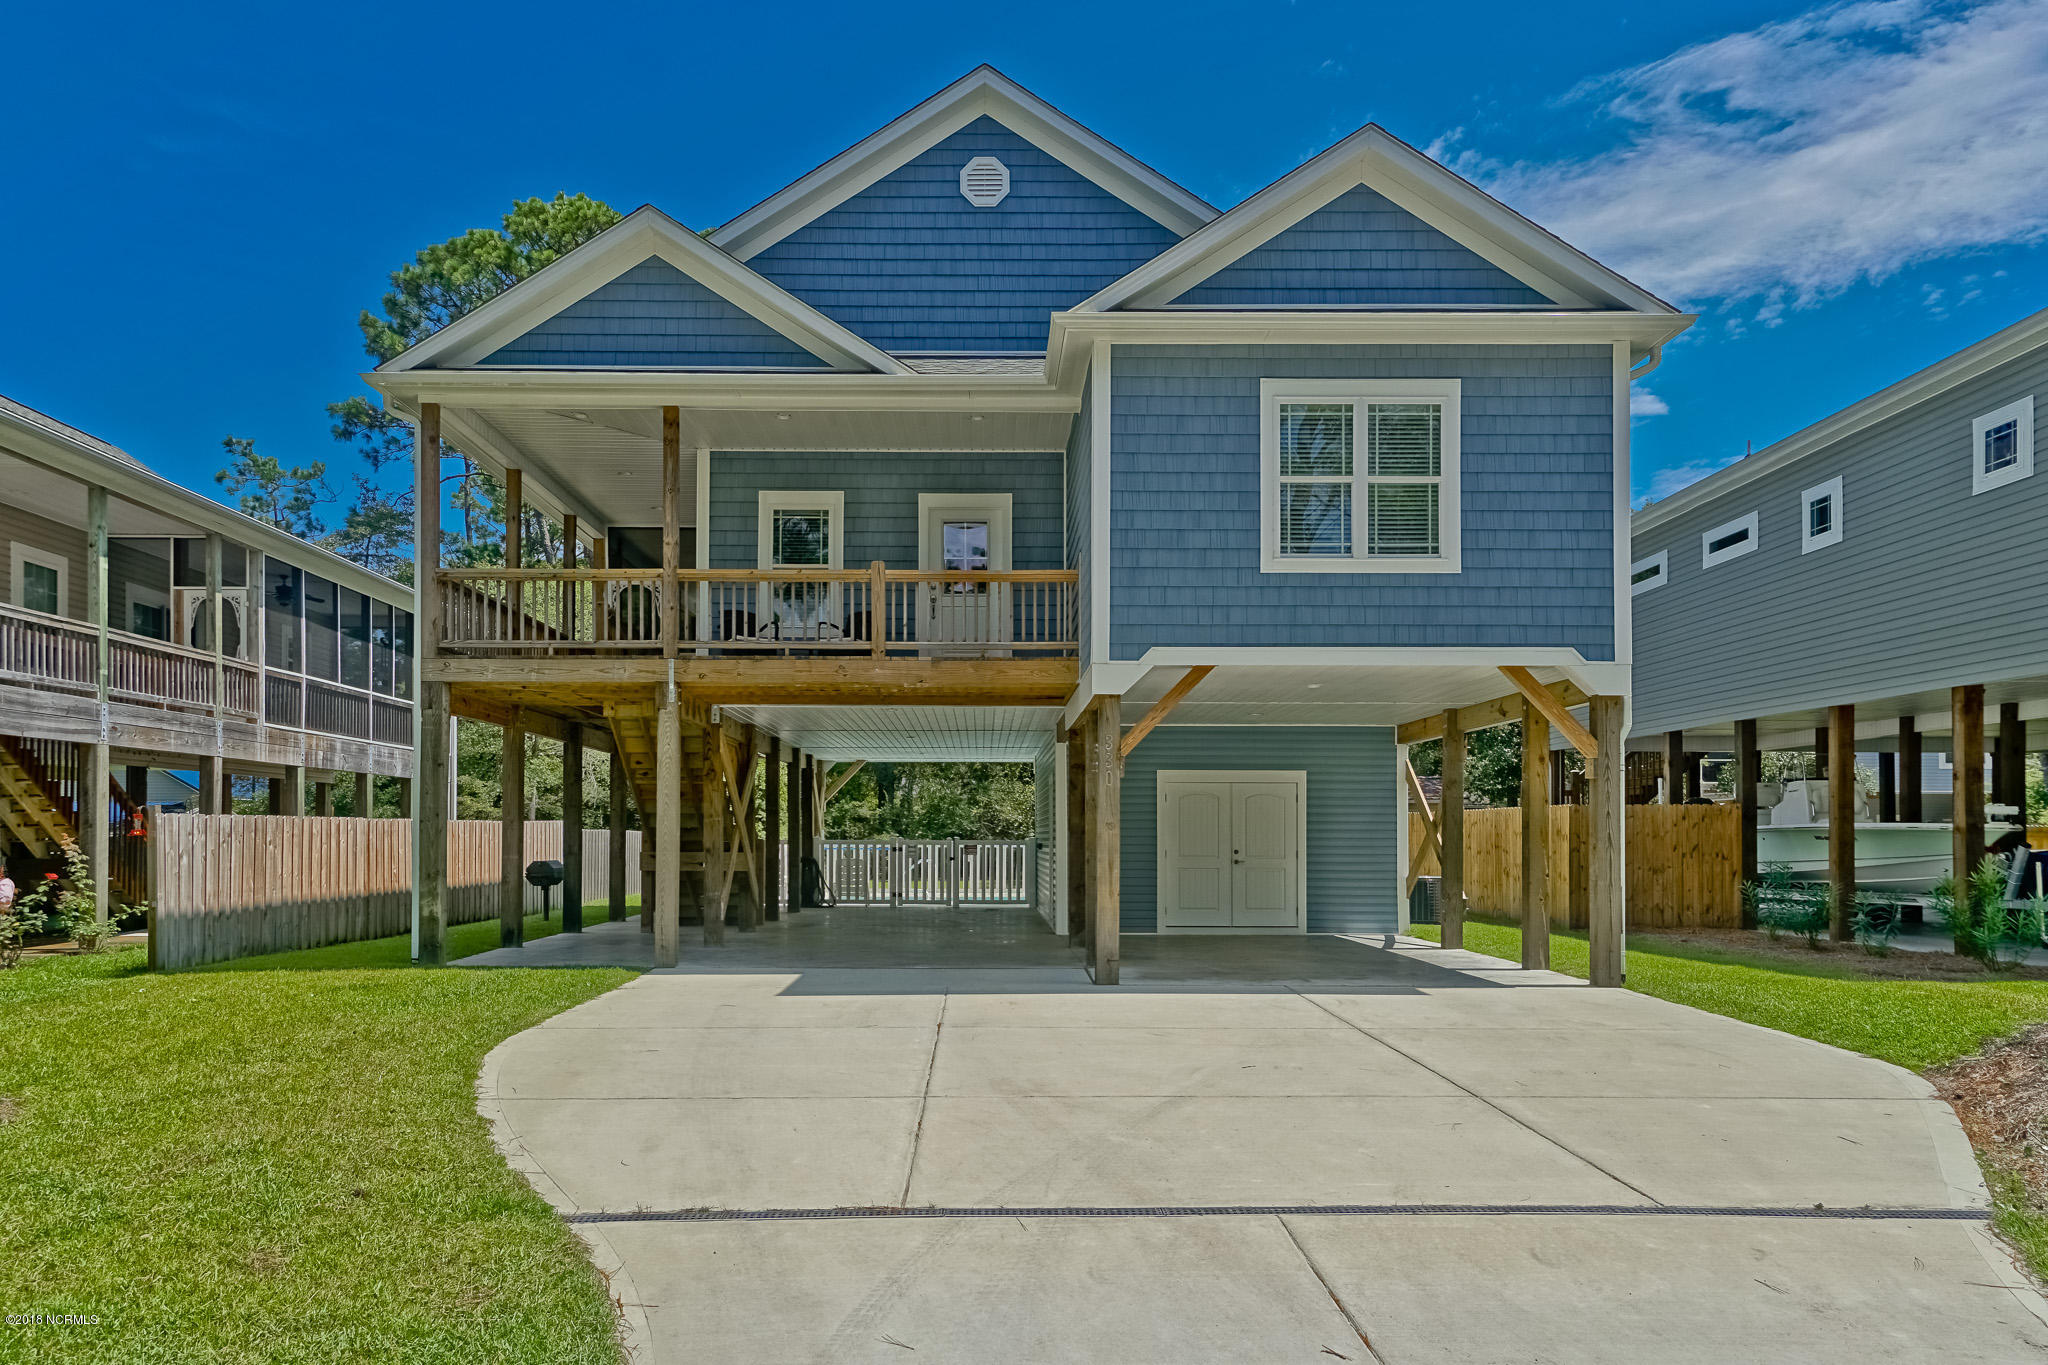 330 NE 52ND Street Oak Island, NC 28465